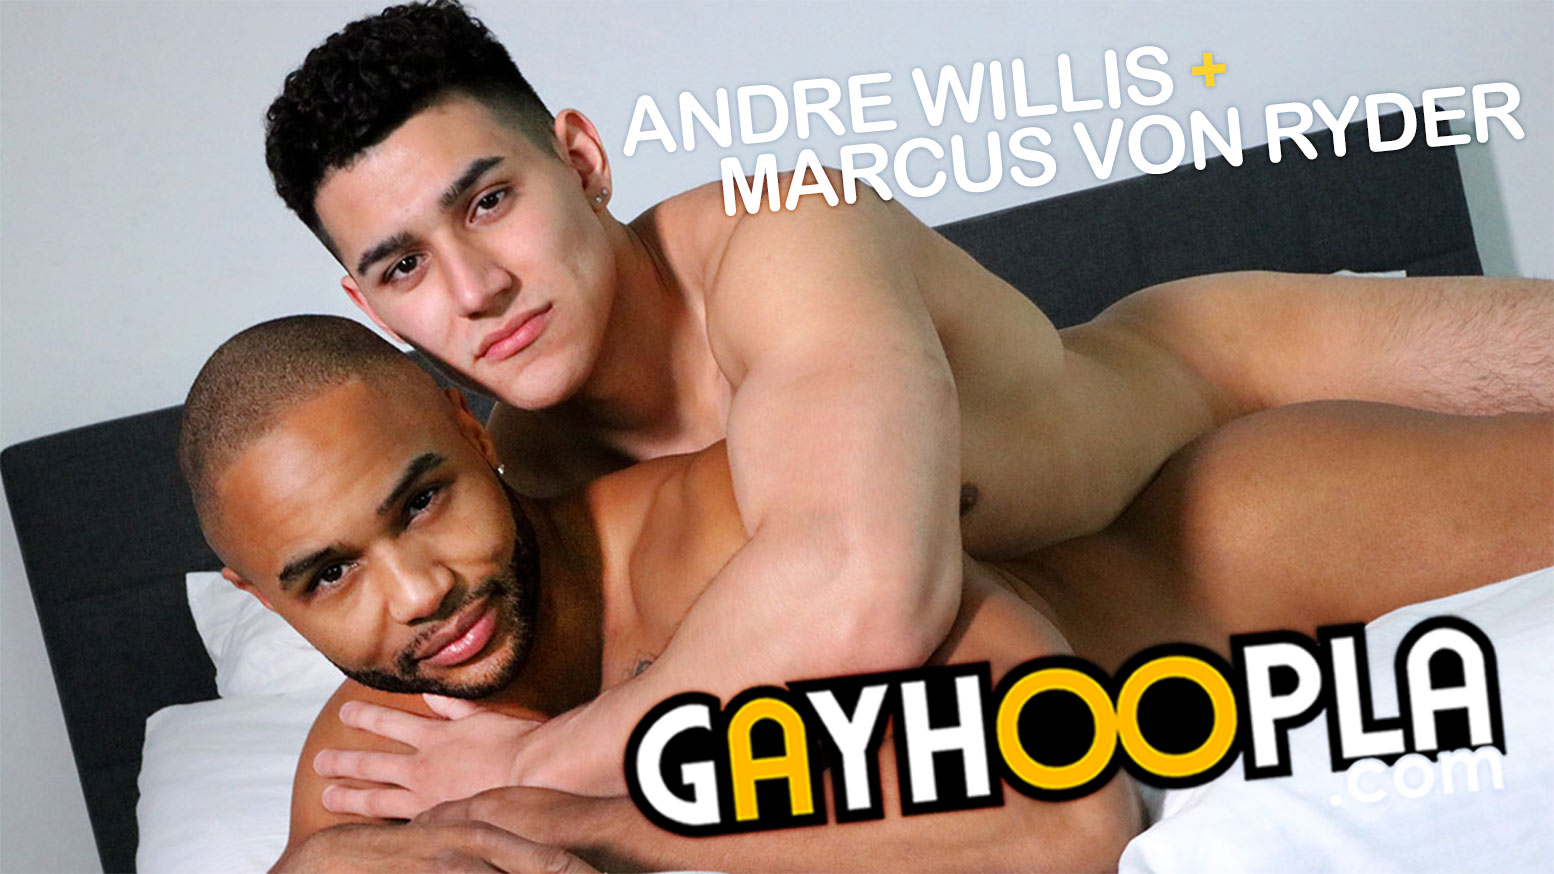 Andre Temple Porn Summerfield gayhoopla: andre willis piledrives marcus von ryder - waybig